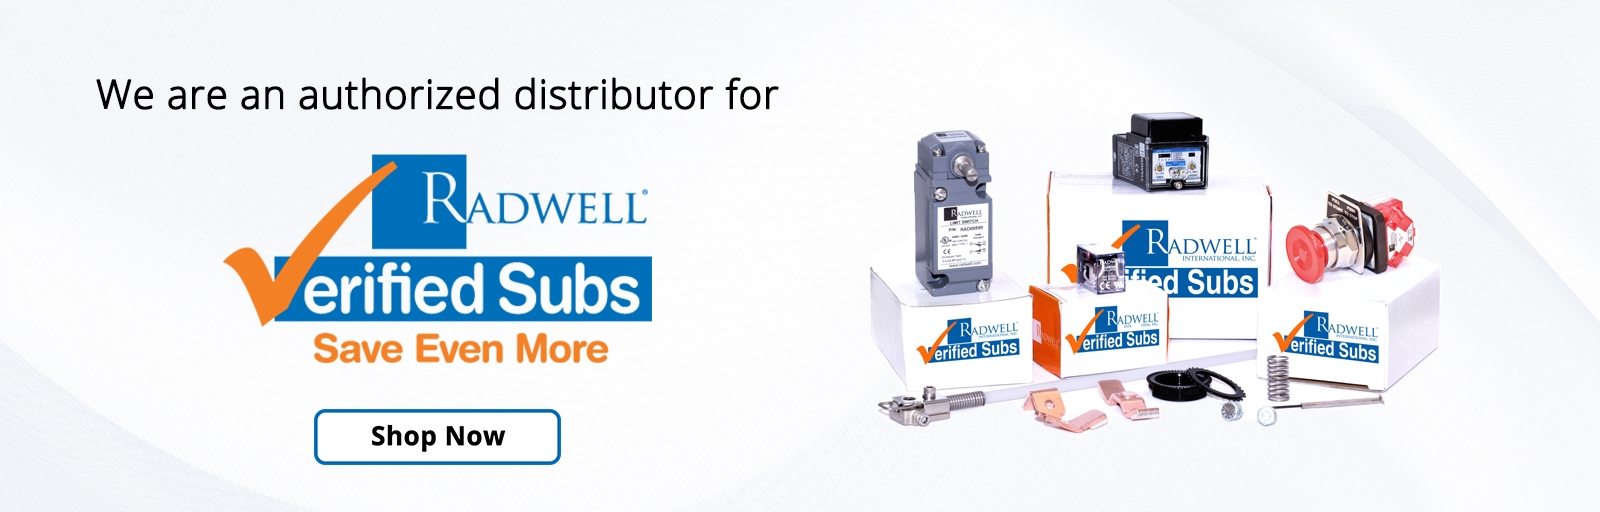 Radwell is an authorized distributor for Radwell Verified Subs